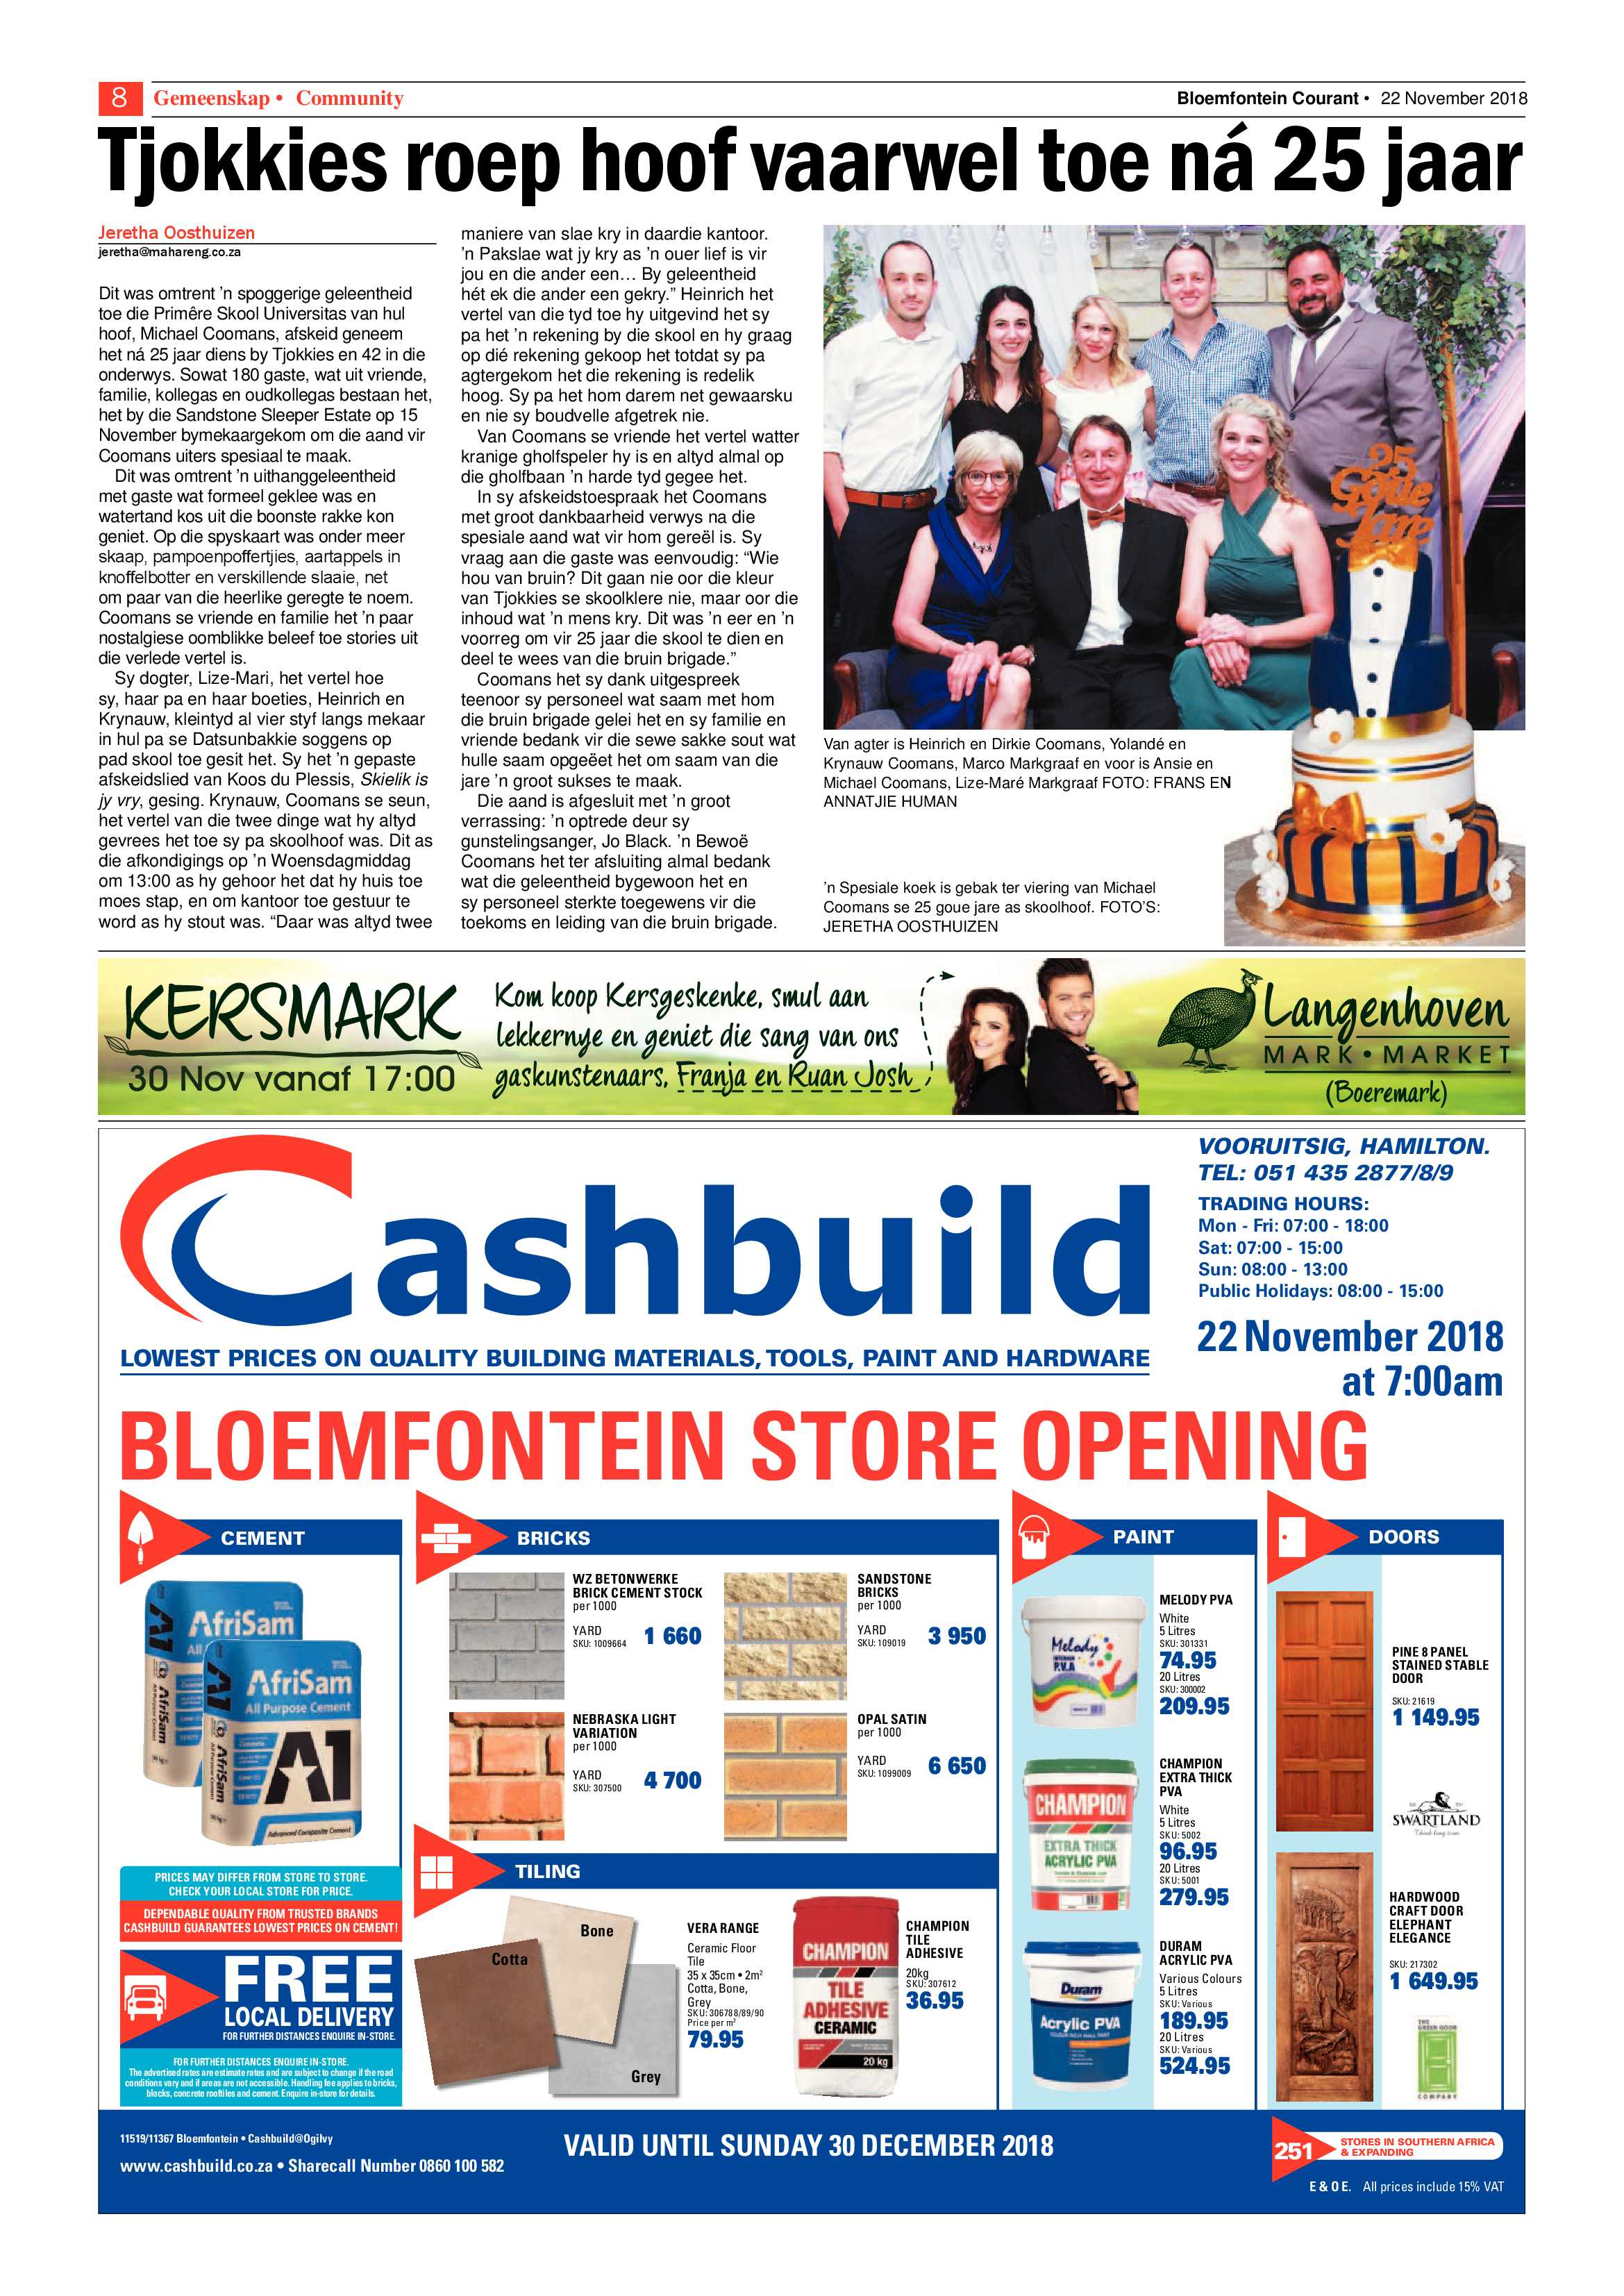 courant-22-november-2018-epapers-page-8